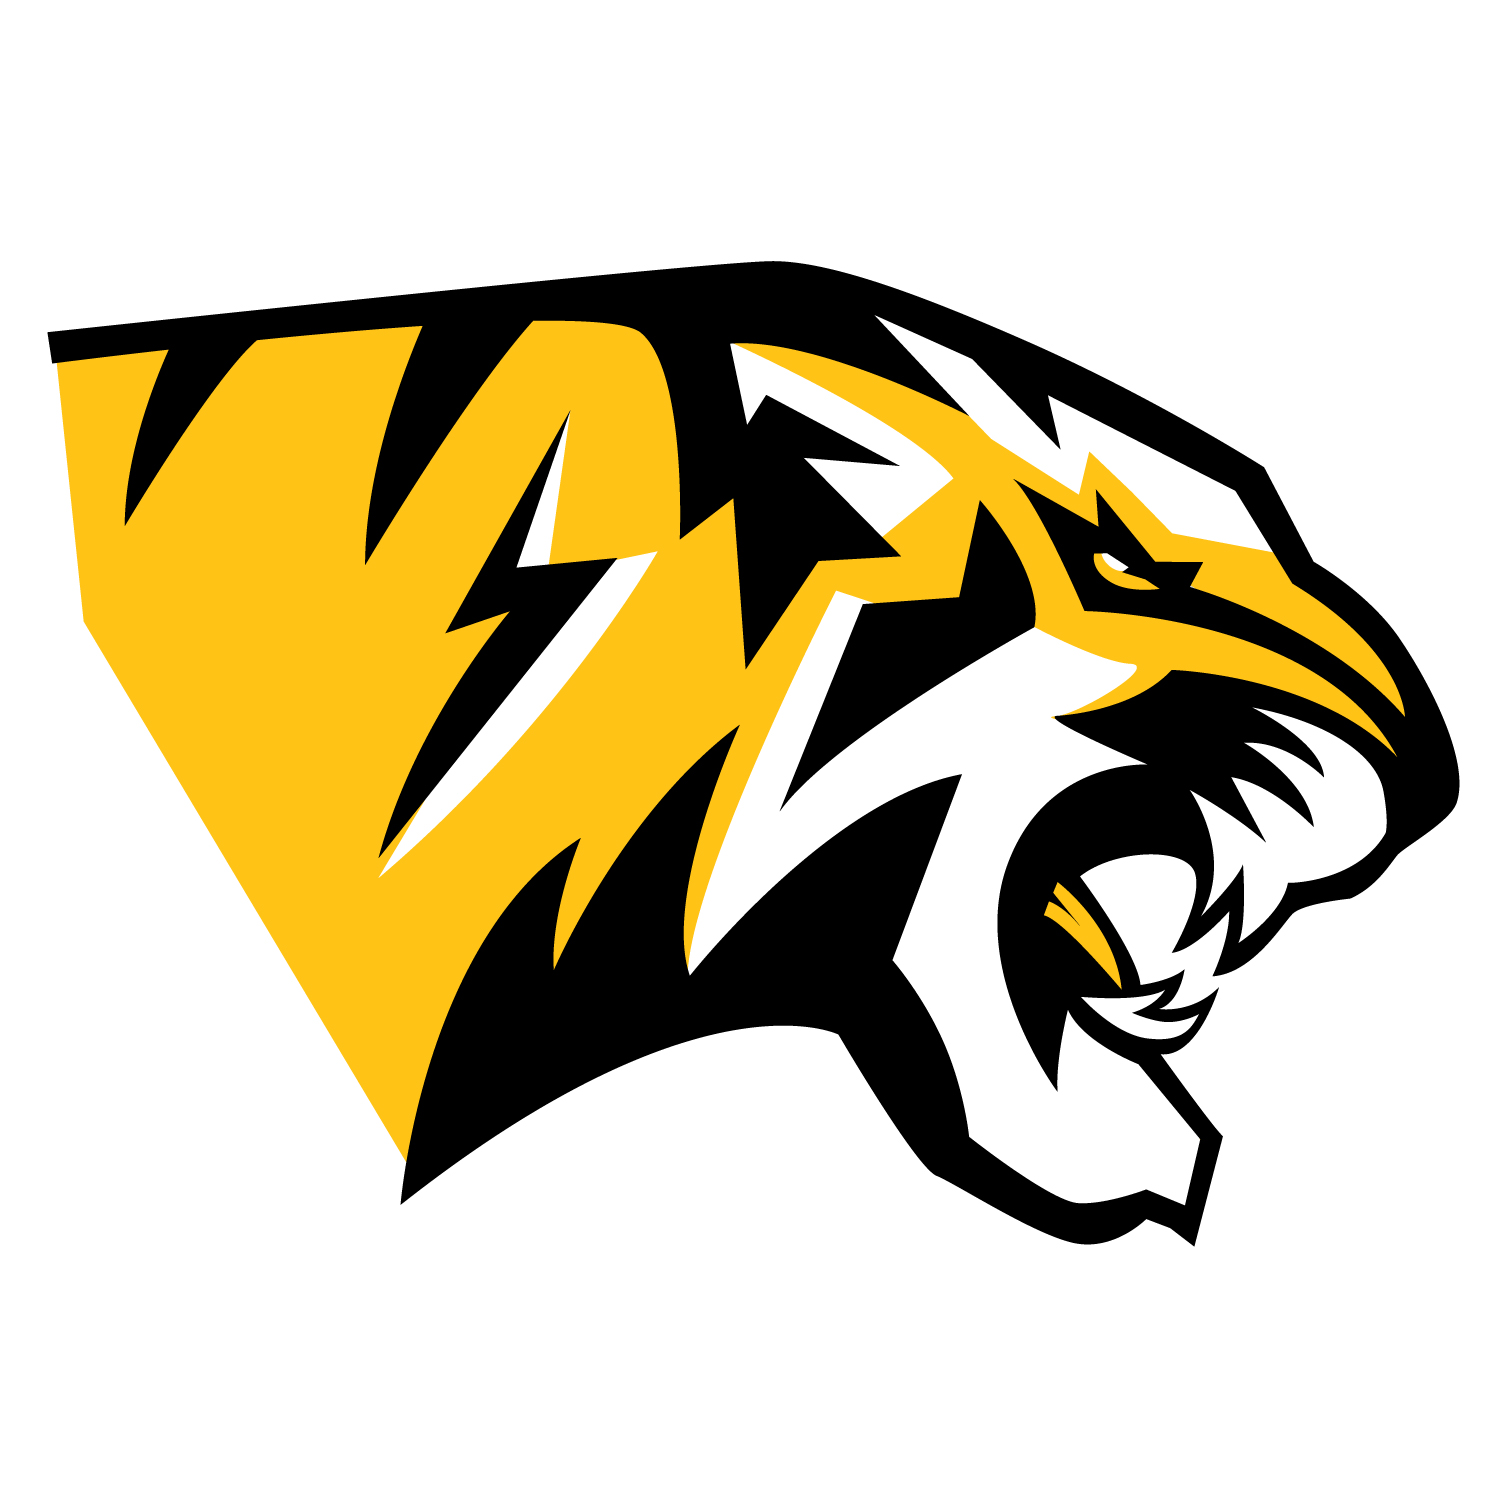 http://www.mattomlordesigns.com/blog/2016/5/5/how-to-design-a-sports-logo 2-my-design-process-step-by-step-Tiger